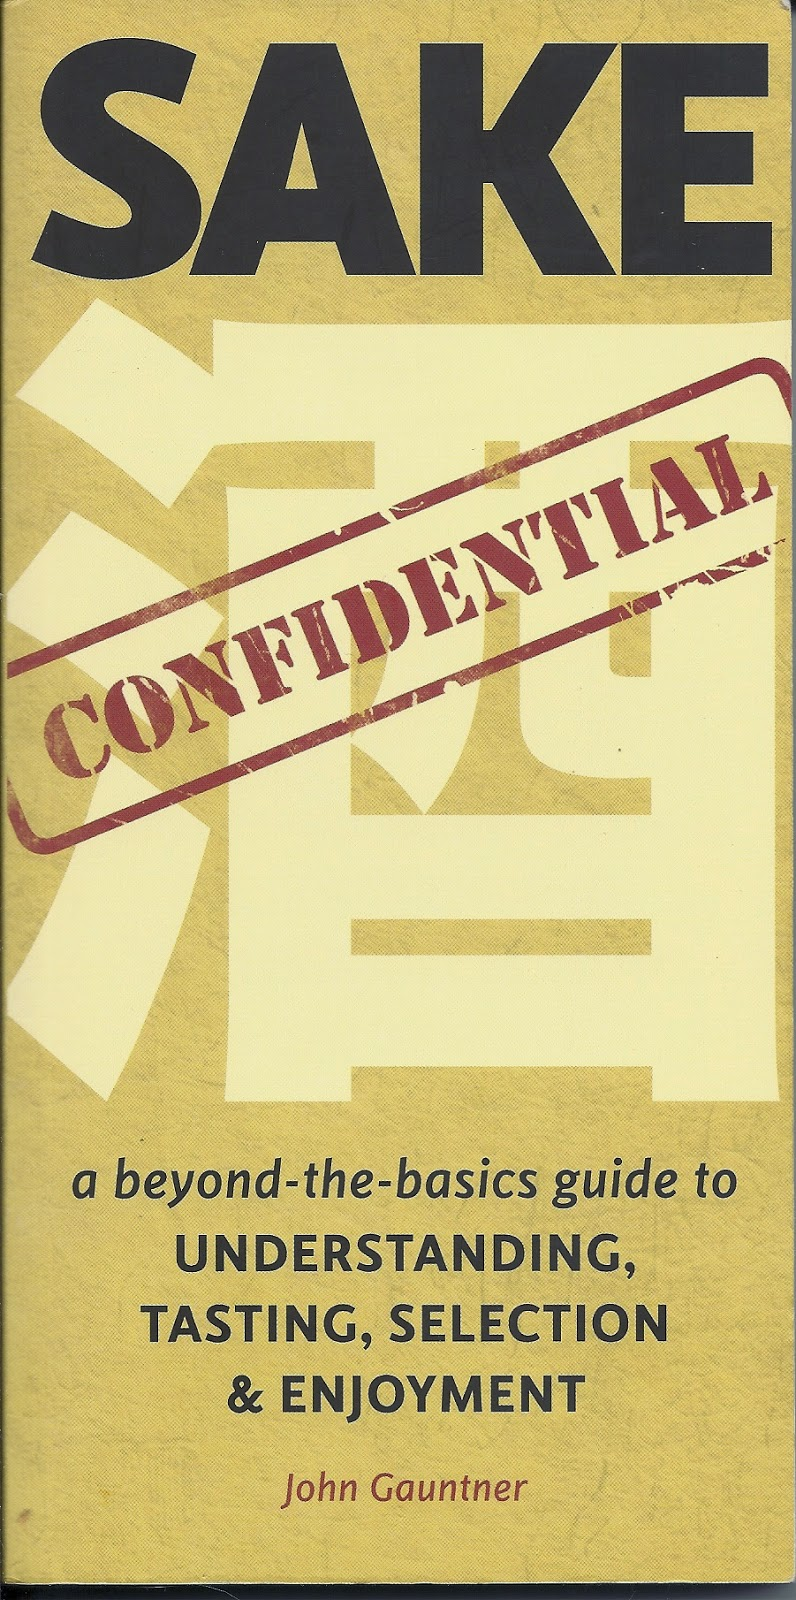 Sake Confidential is certainly worth picking up if you have any curiosity about the world of sake.